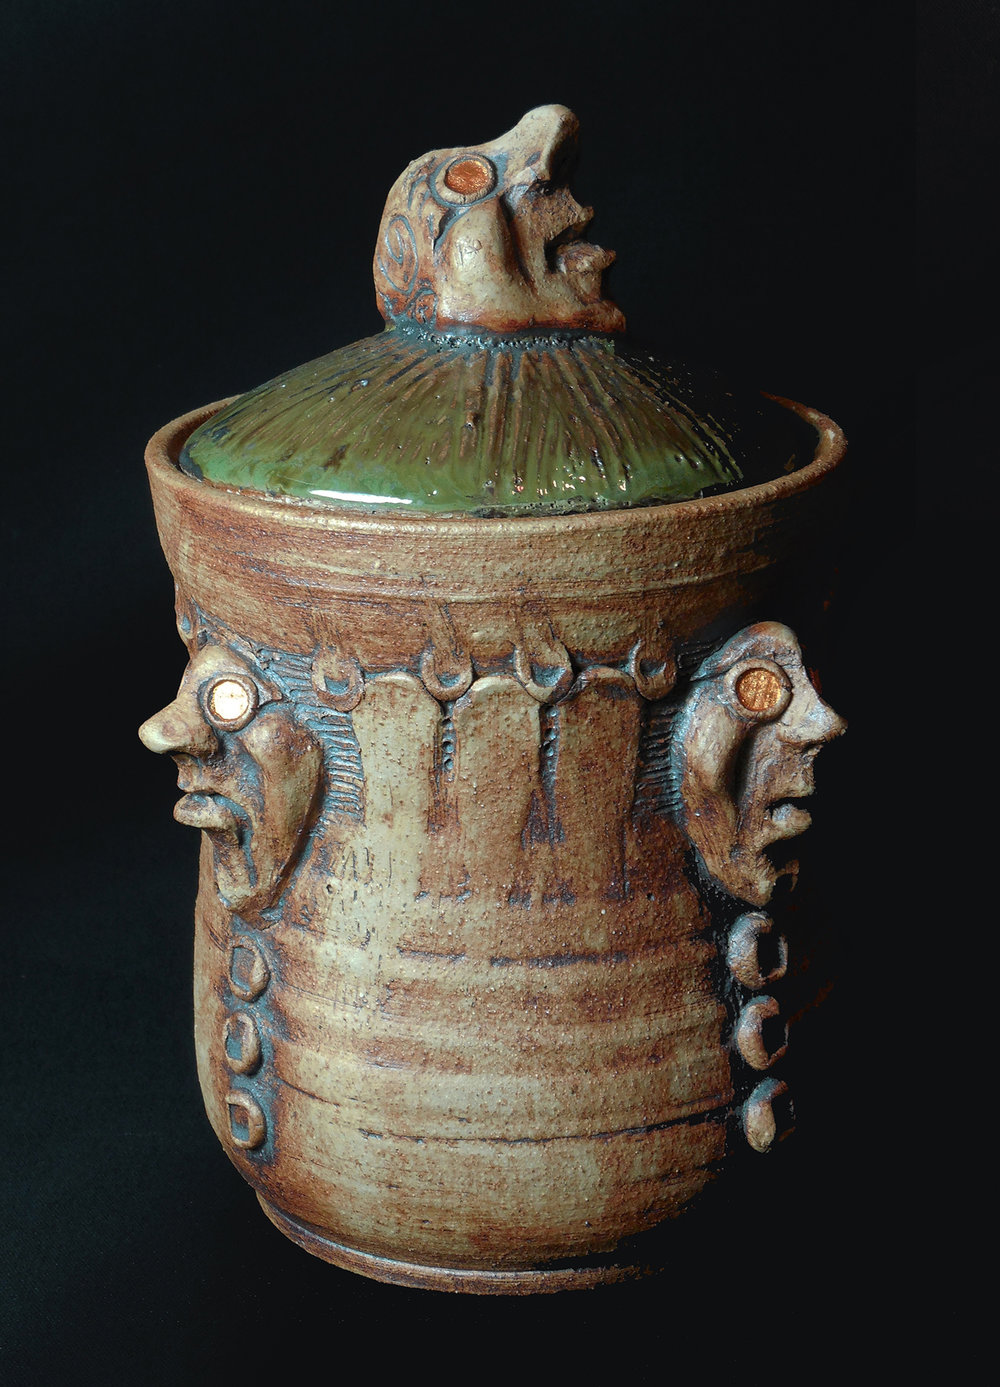 VESSEL WITH 3 HEADS 12 7 18 - Copy - Copy.jpg